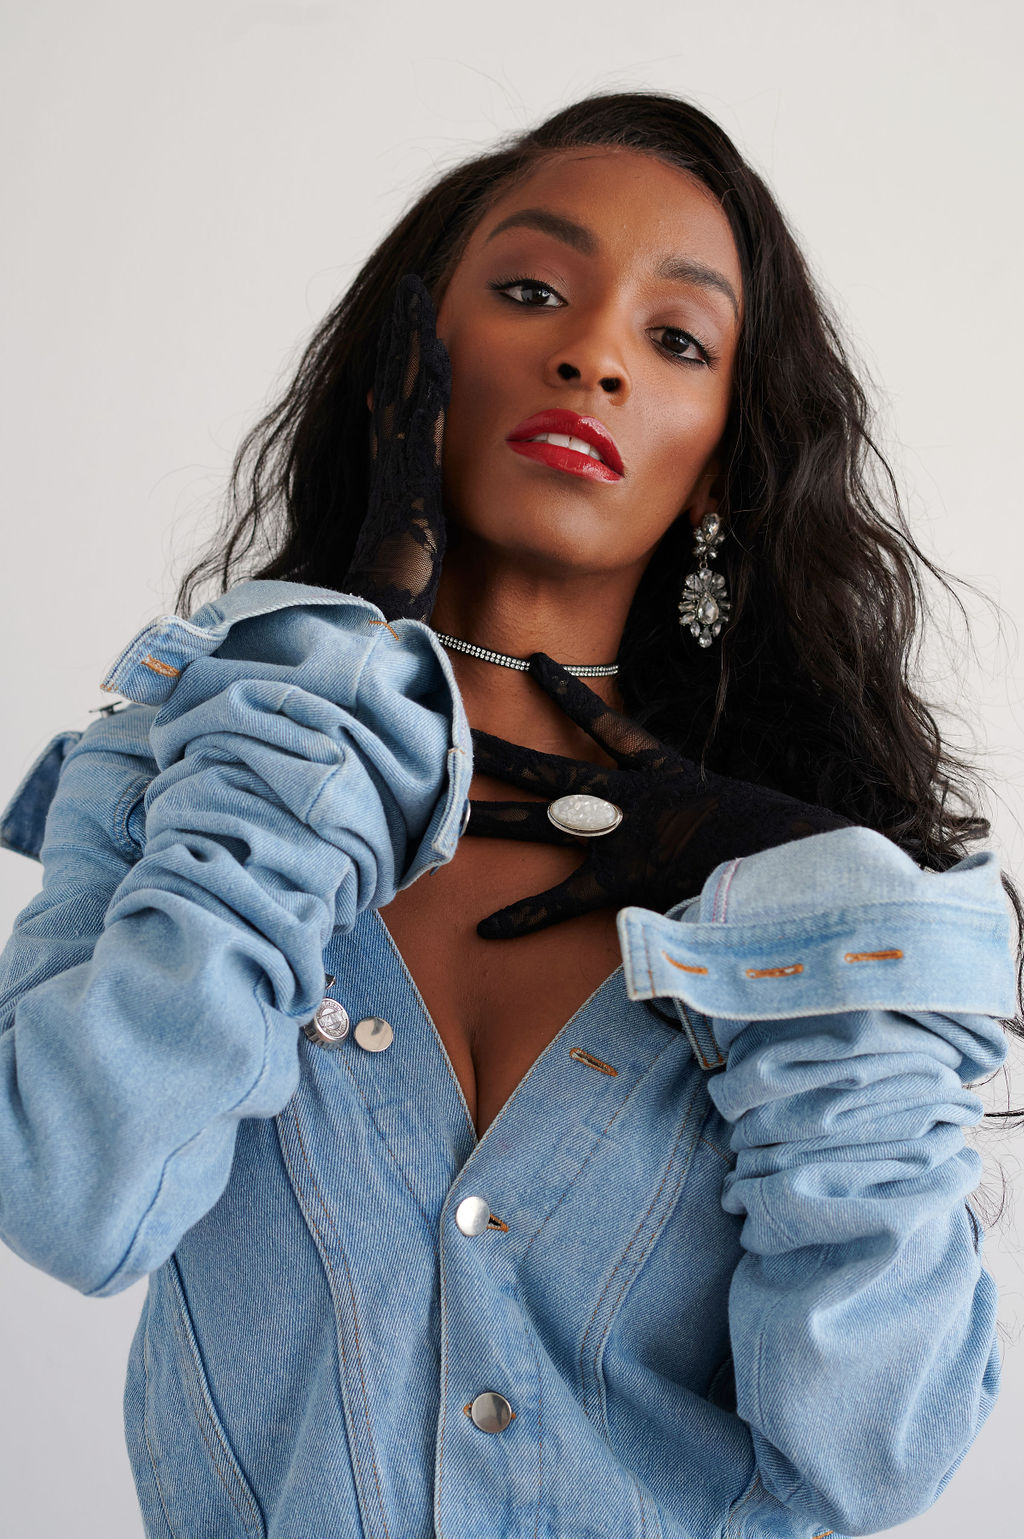 Annjulia Smalls In Y/Project-styled by melissa-lcm-sheldon botler photography-denim jacket-elongated sleeves-high fashion